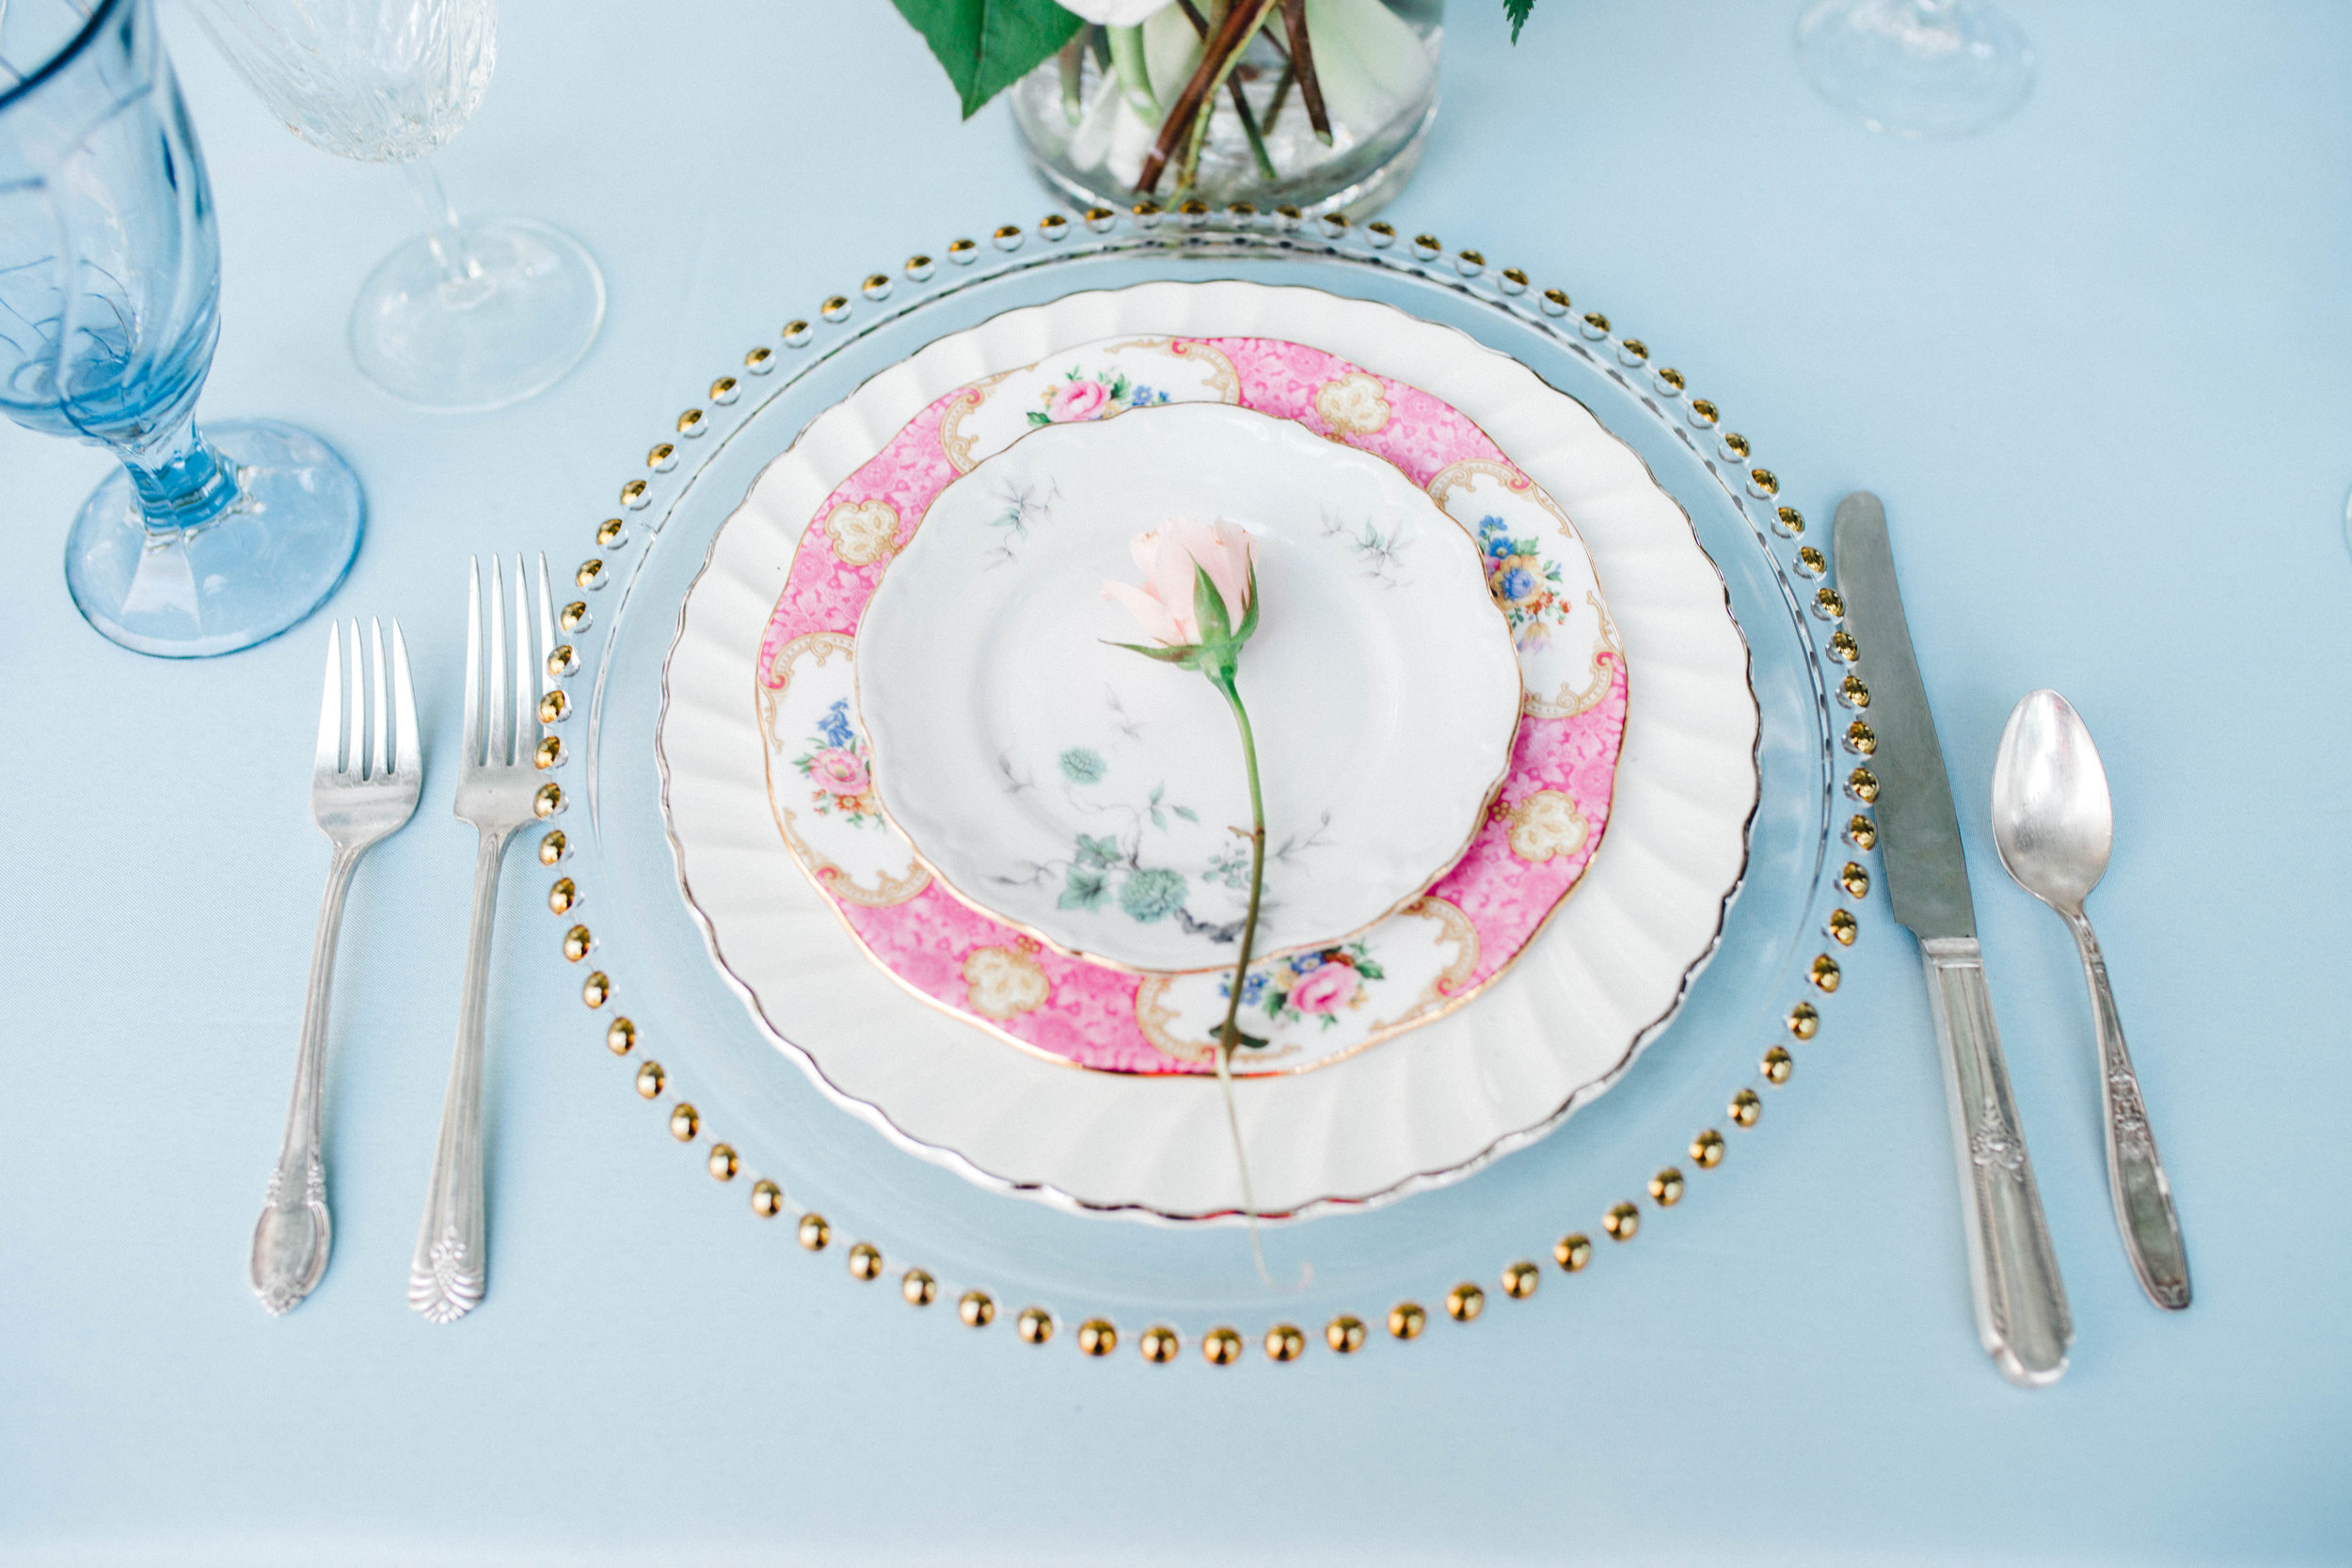 A floral place setting in North Carolina